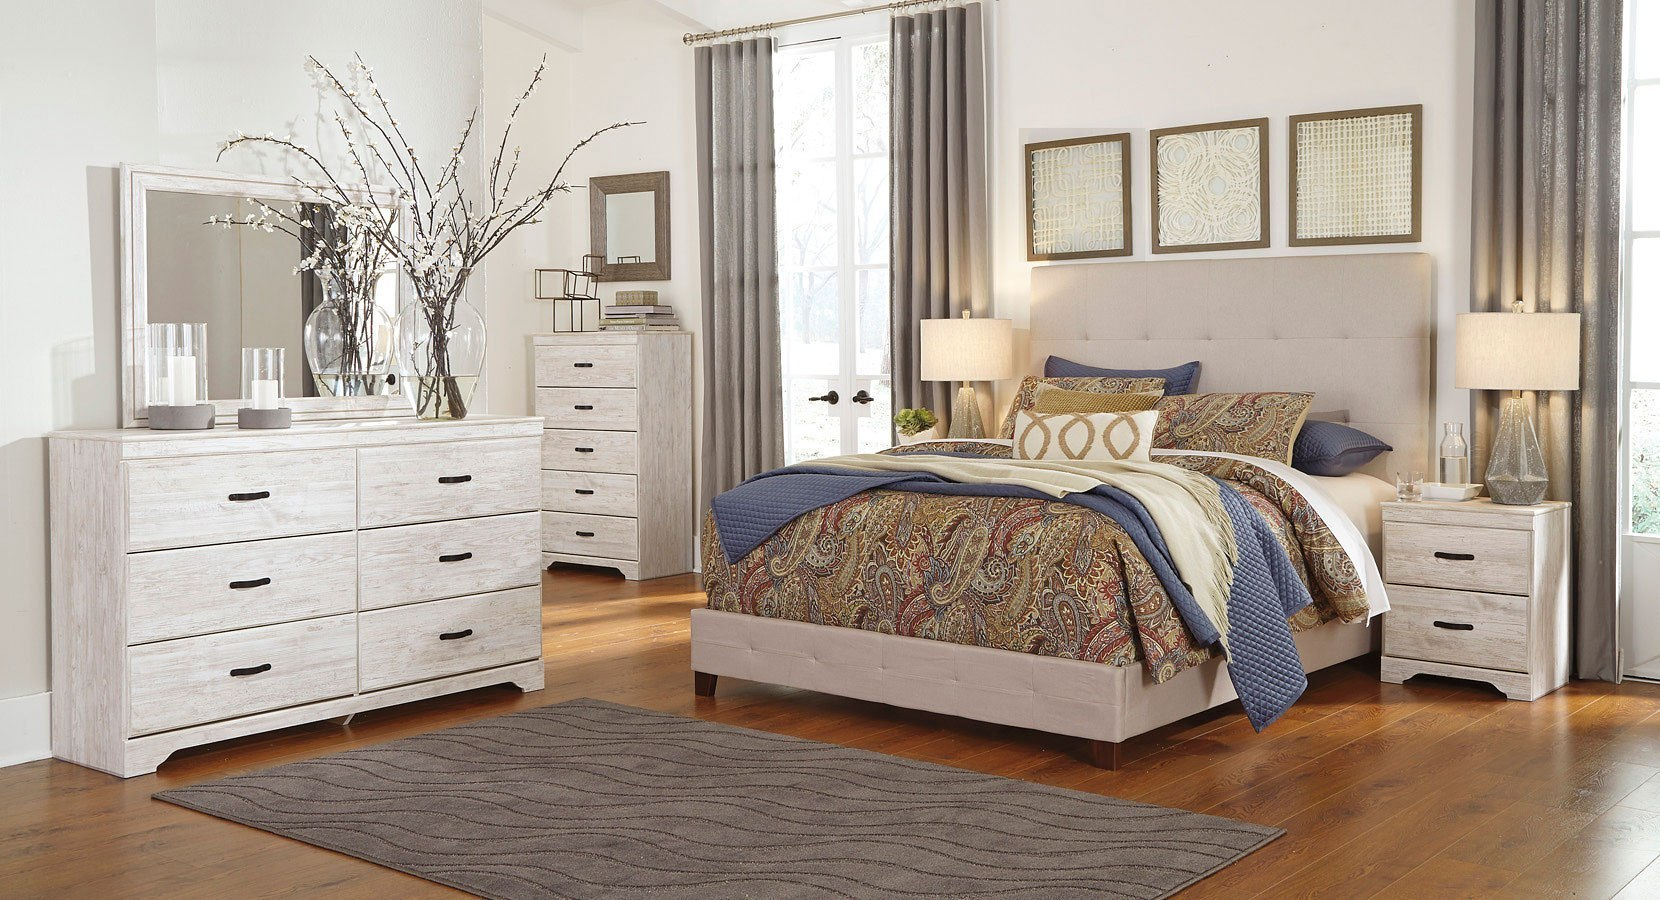 briartown bedroom set w cream upholstered bed signature 13694 | b218 92 b130 481 br set cream uph bed 1